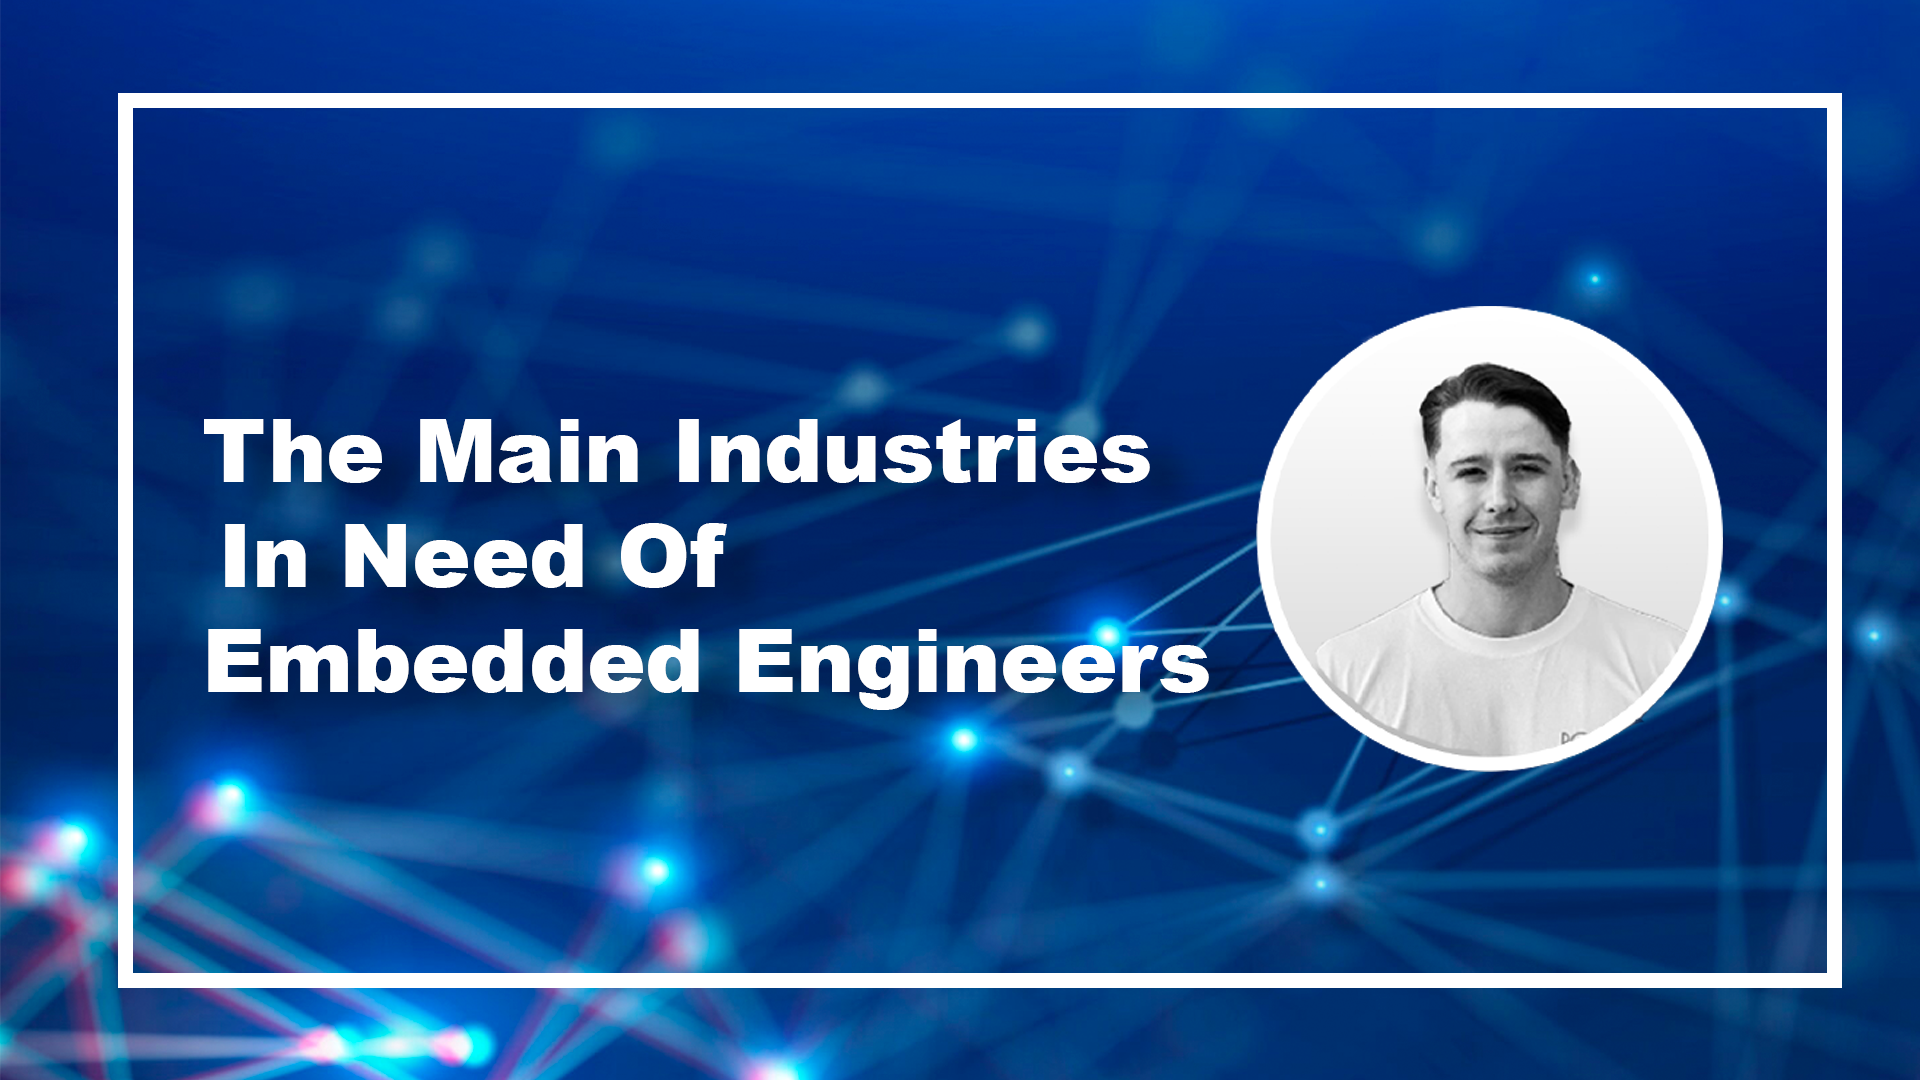 The Main Industries In Need Of Embedded Engineers